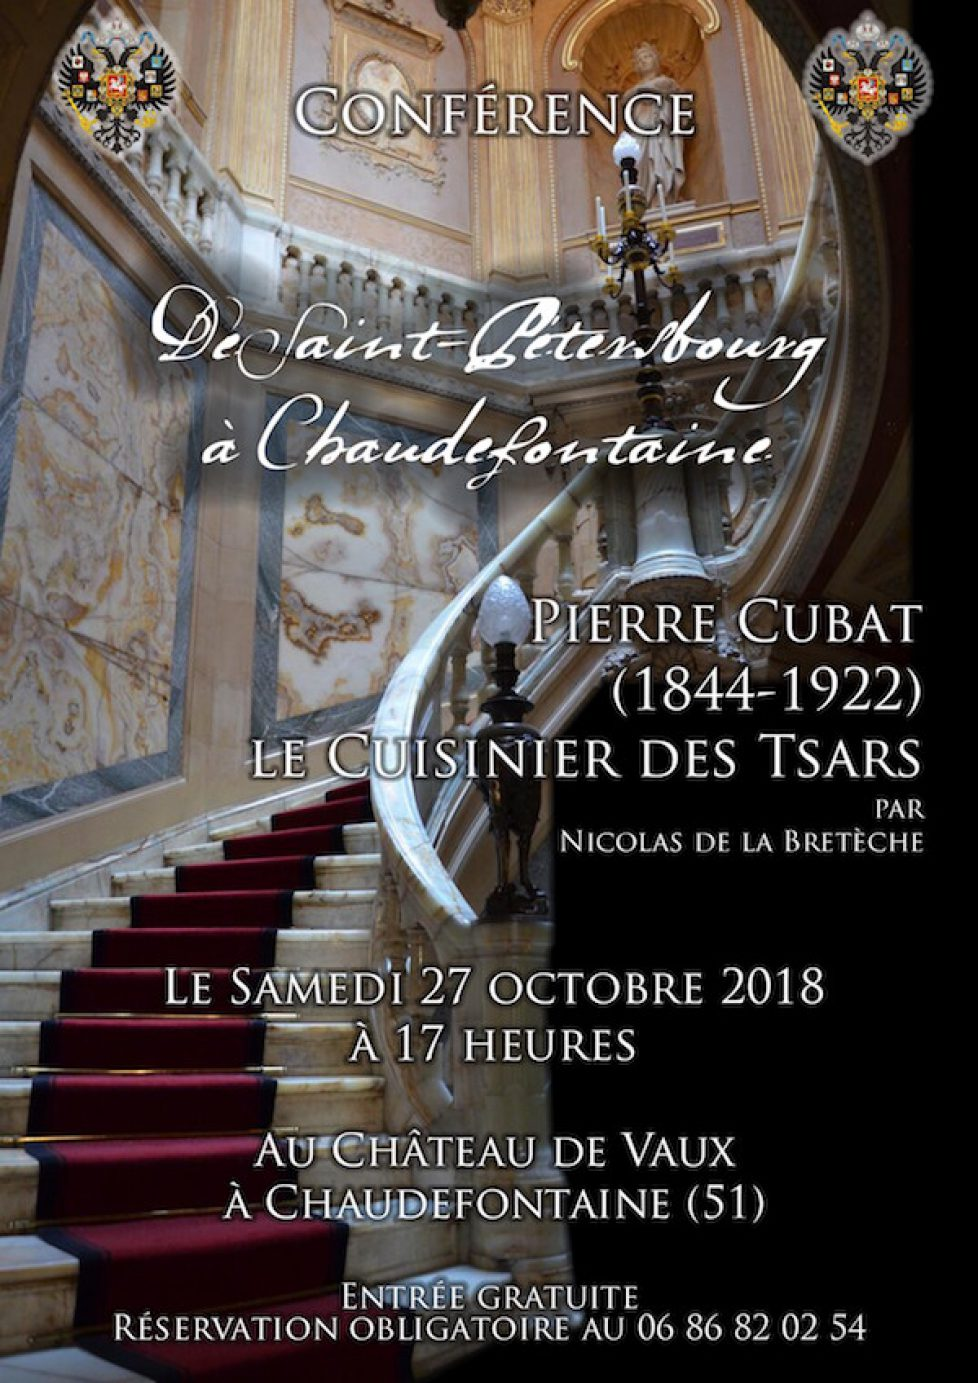 2018-10-27-paris-conference-pierre-cubat